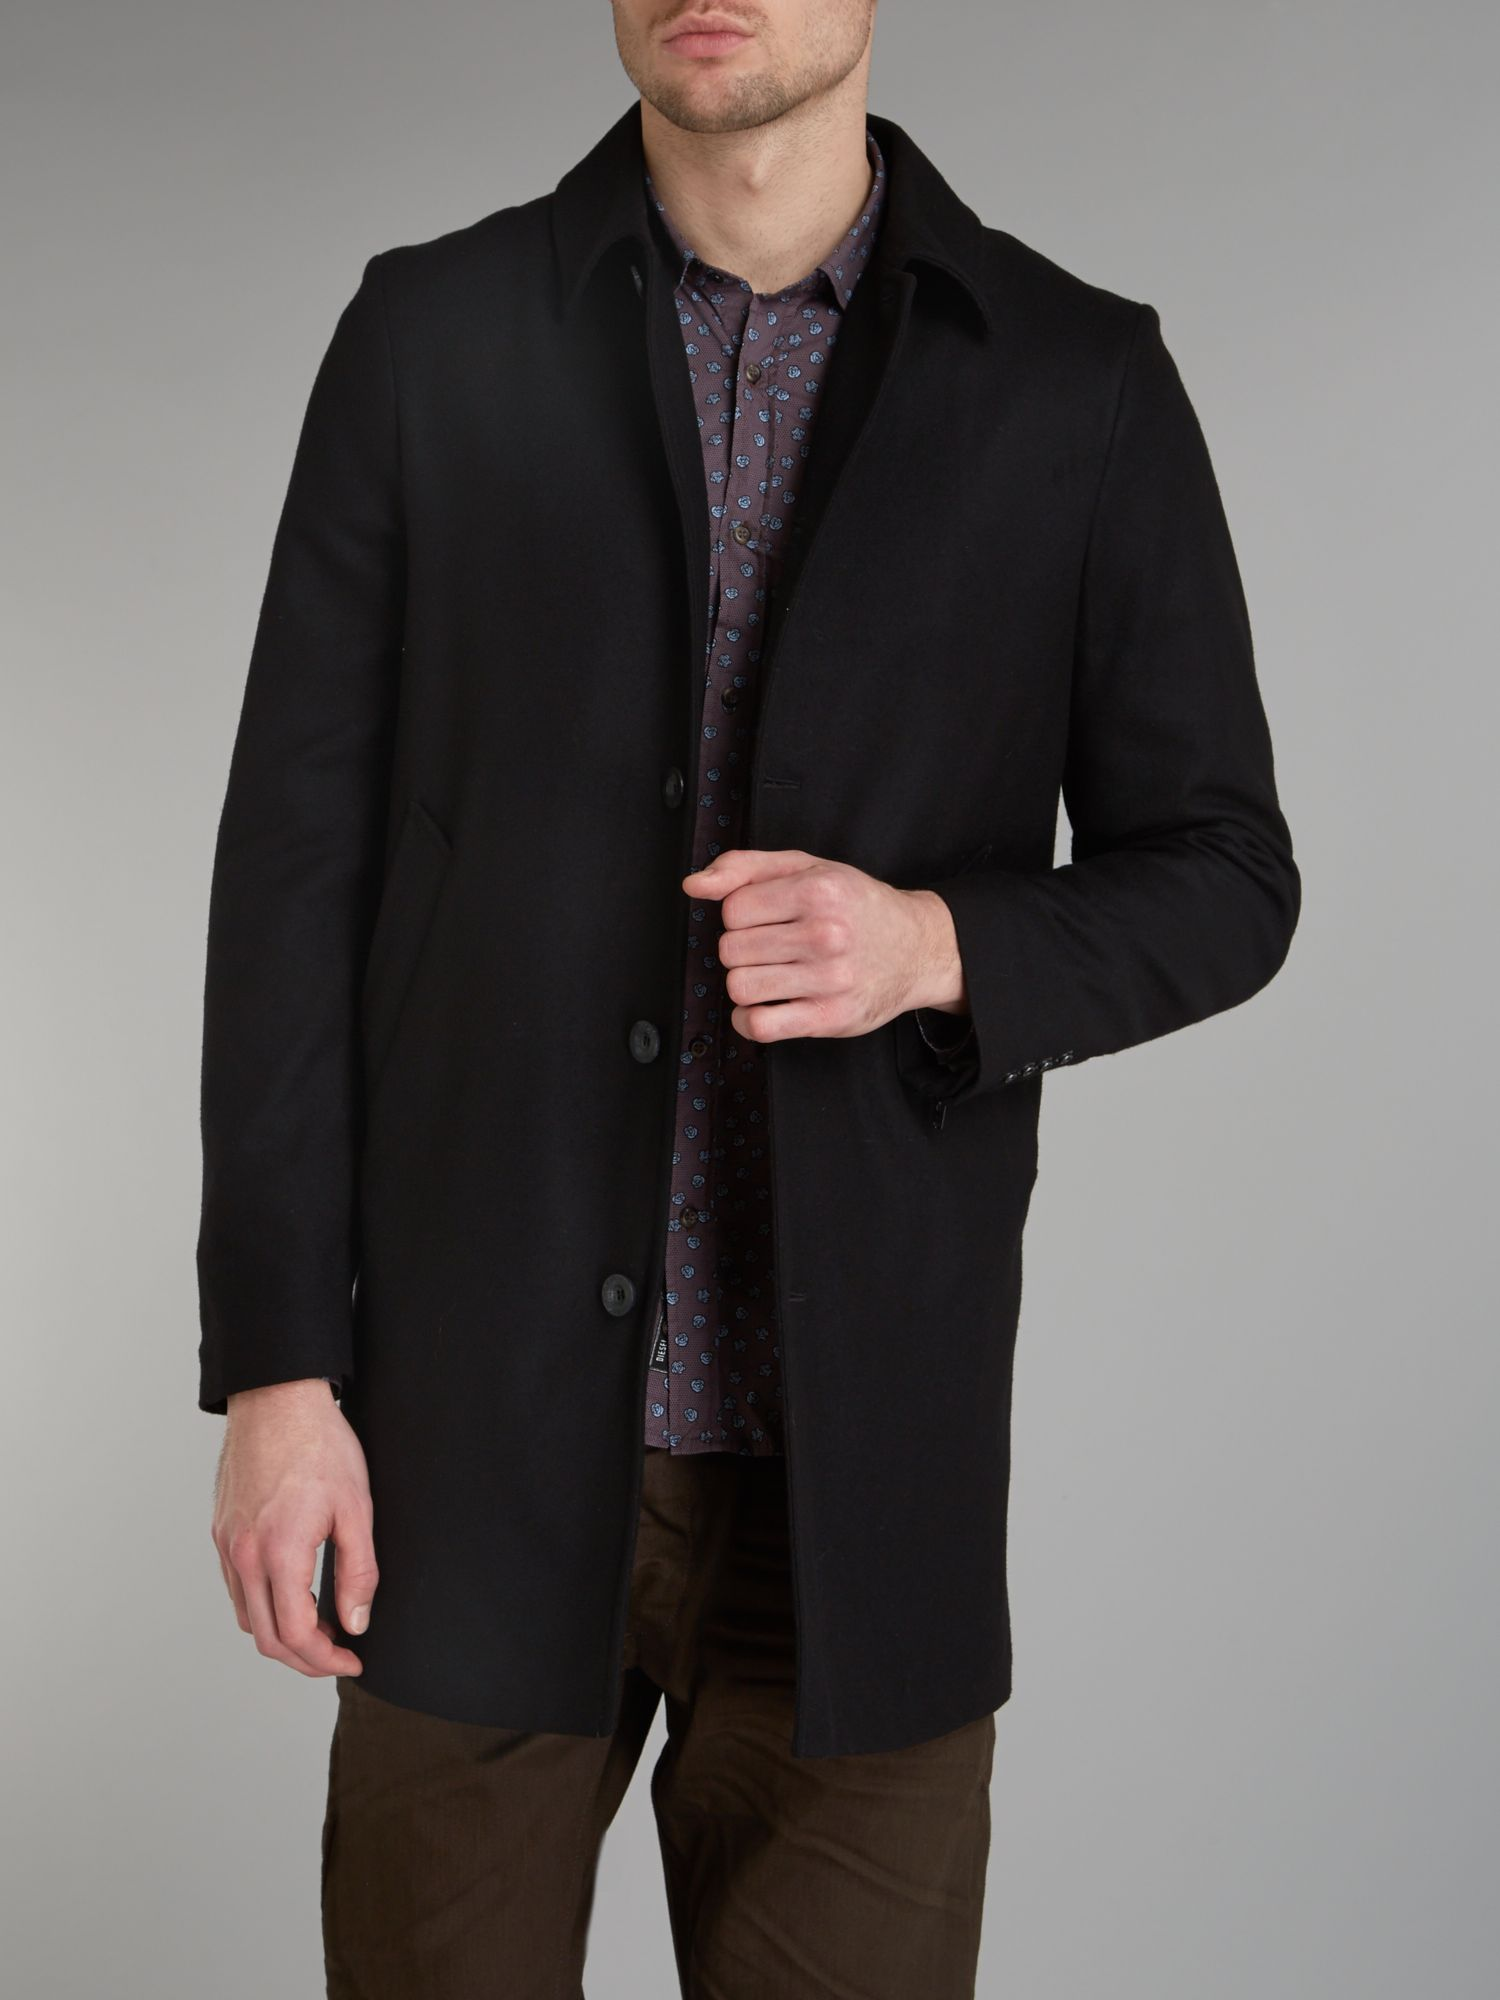 Single breasted three quarter length jacket